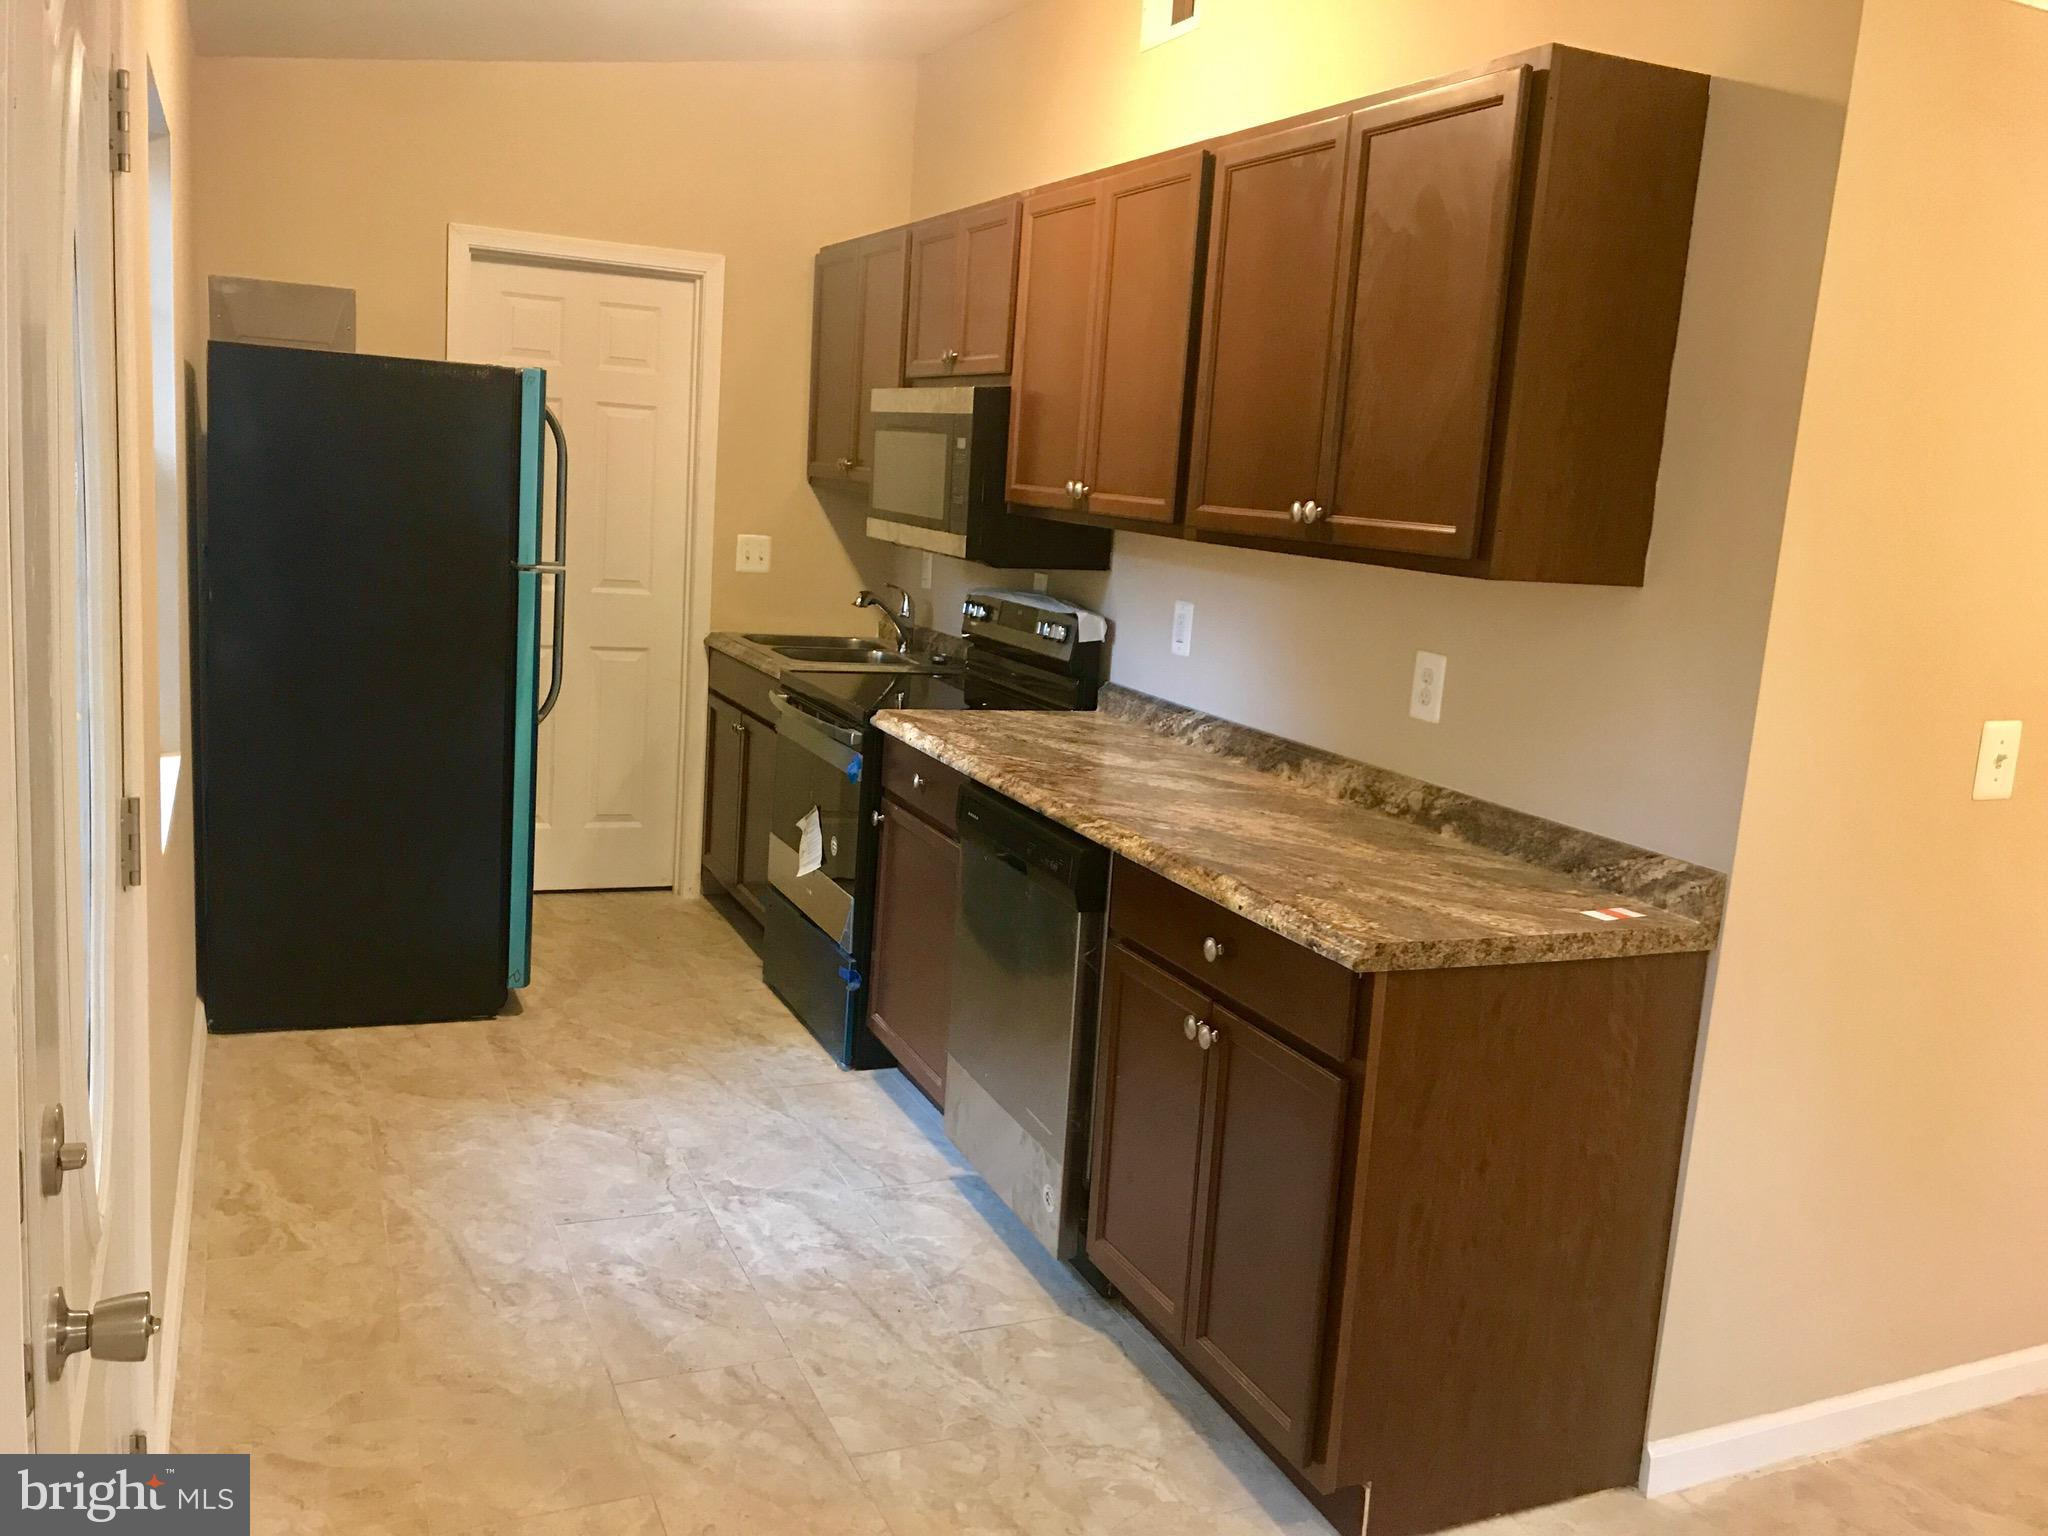 Single Family Home for the price of Townhouse. Totally Renovated. New Kitchen, New Bathrooms, New Roofing, New HVAC, Flooring, Lighting.Fresh Paint. Close to Major Highways, Potomac Mills Mall and Military bases.